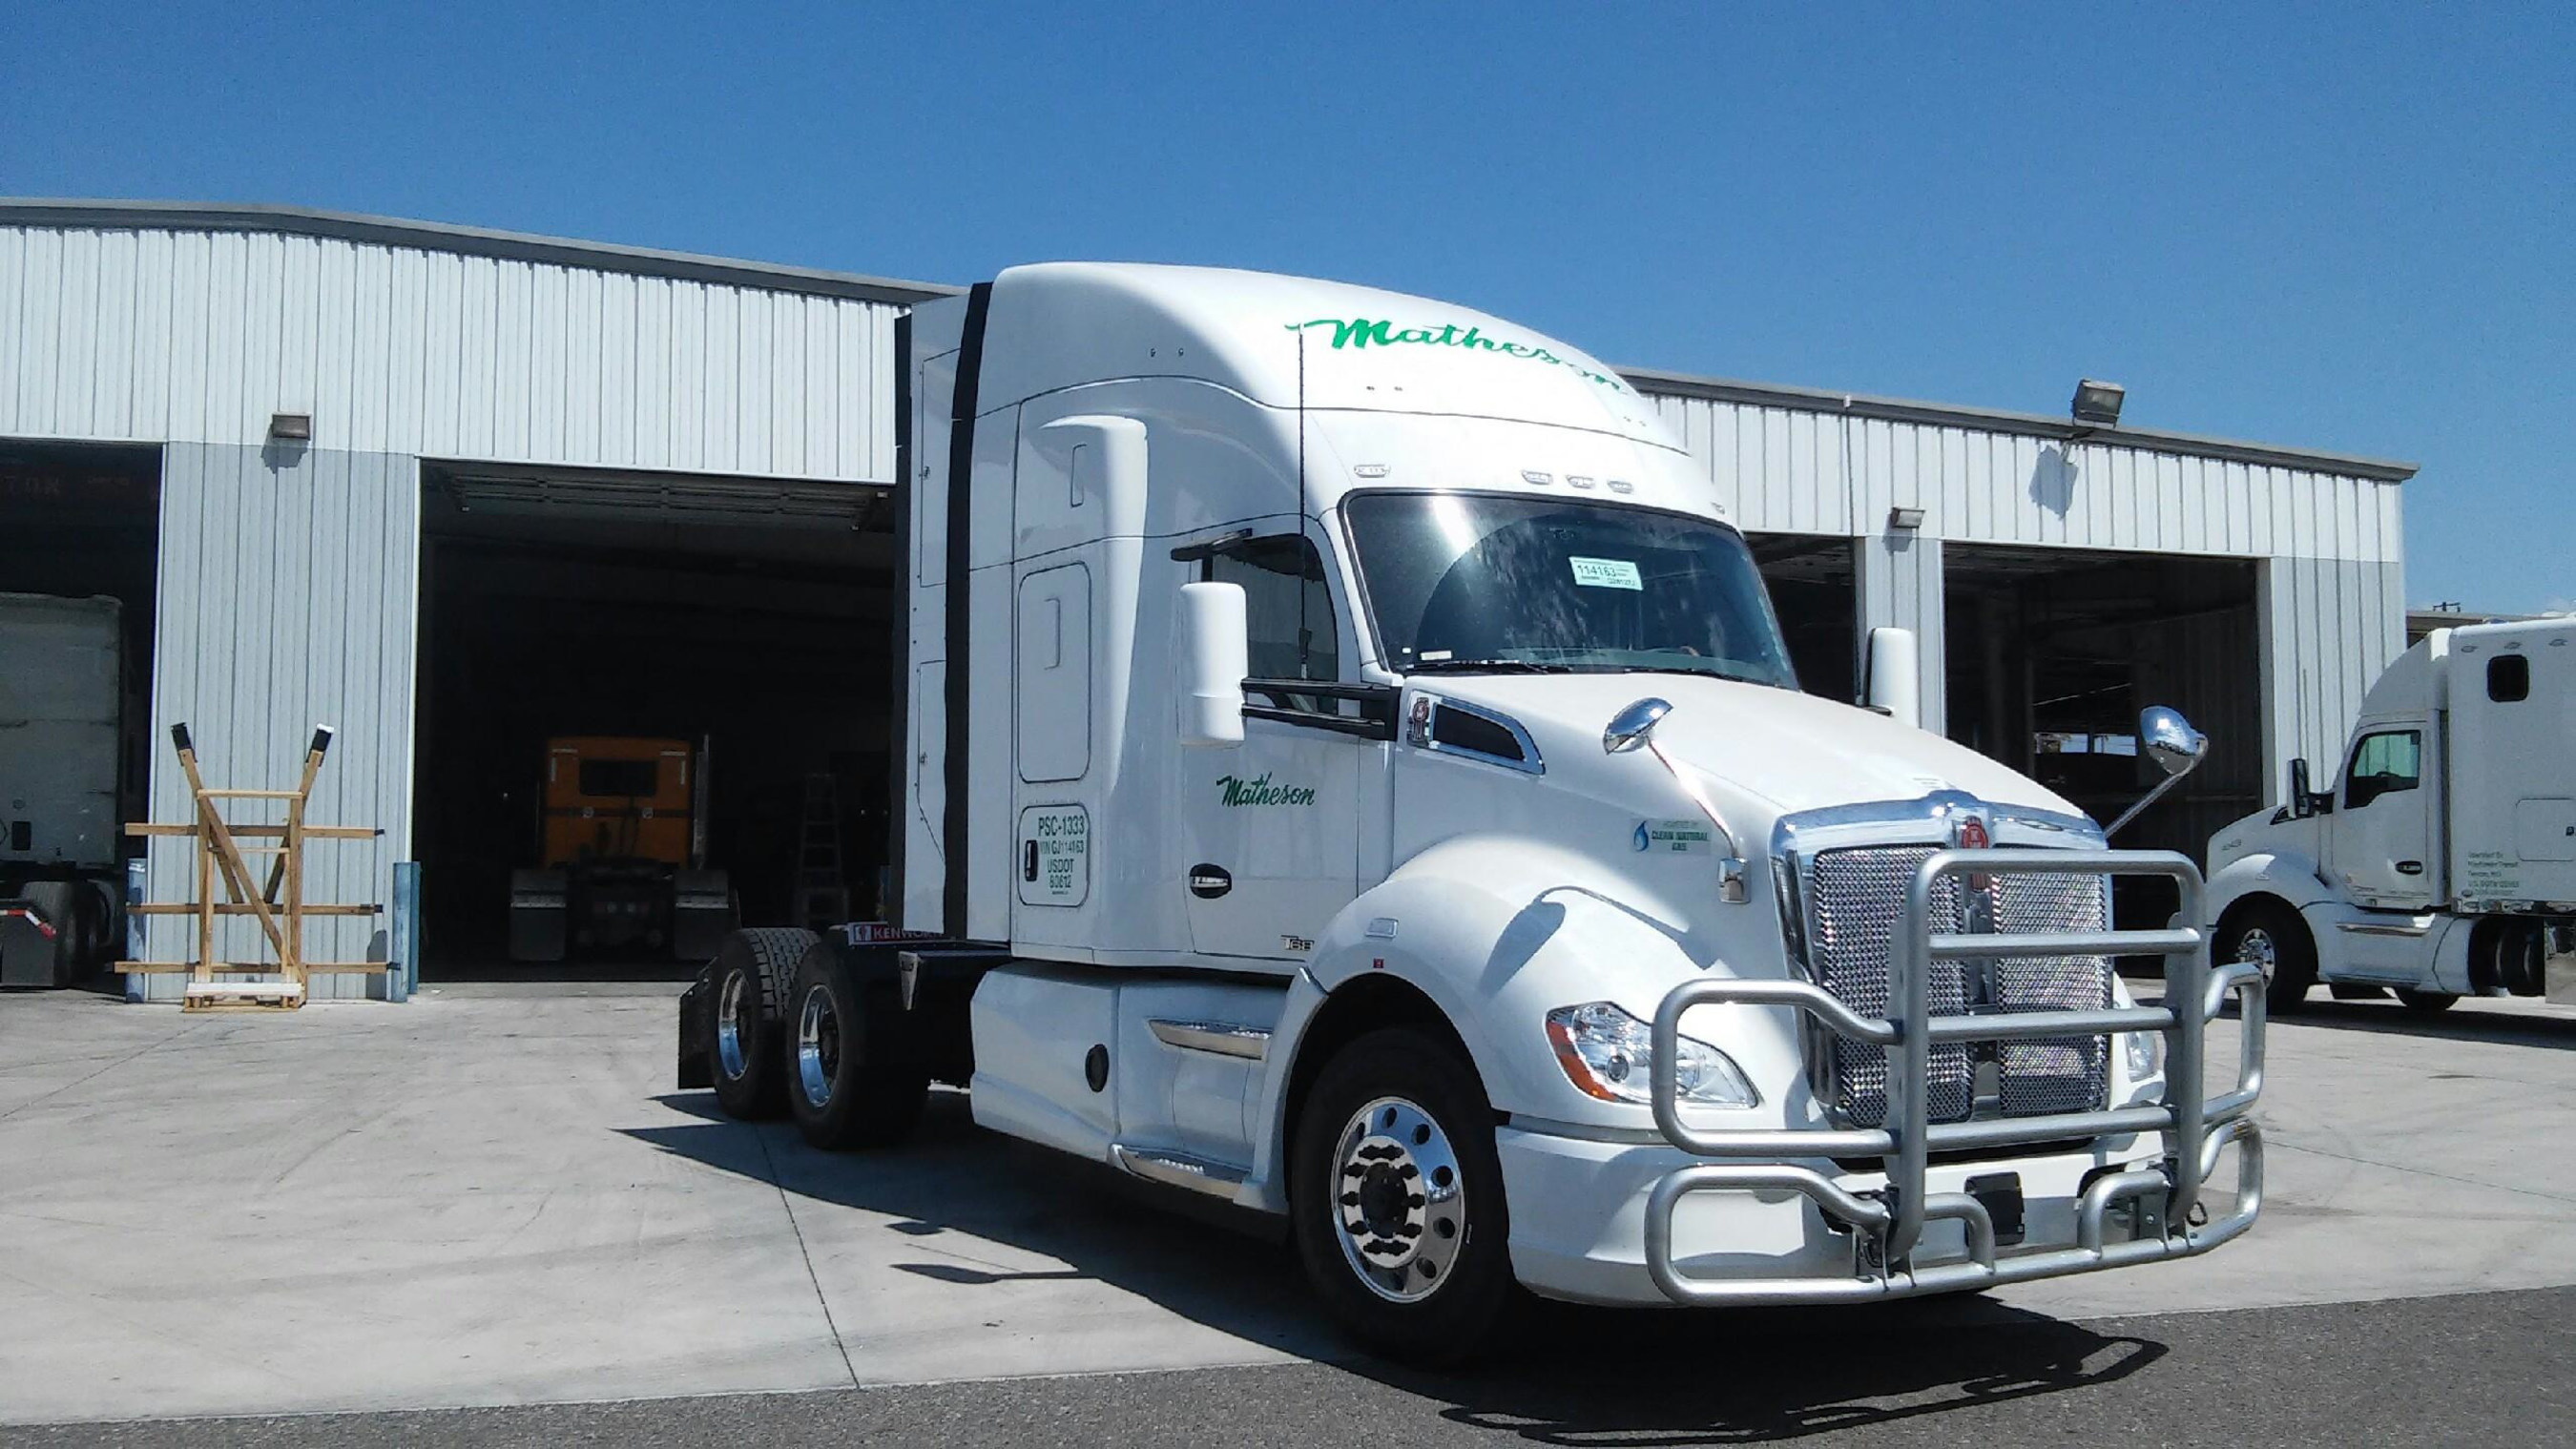 Matheson Trucking, Inc.'s Postal Services Division Continues To Build a 'Green' Fleet With 37 New CNG/LNG Tractors